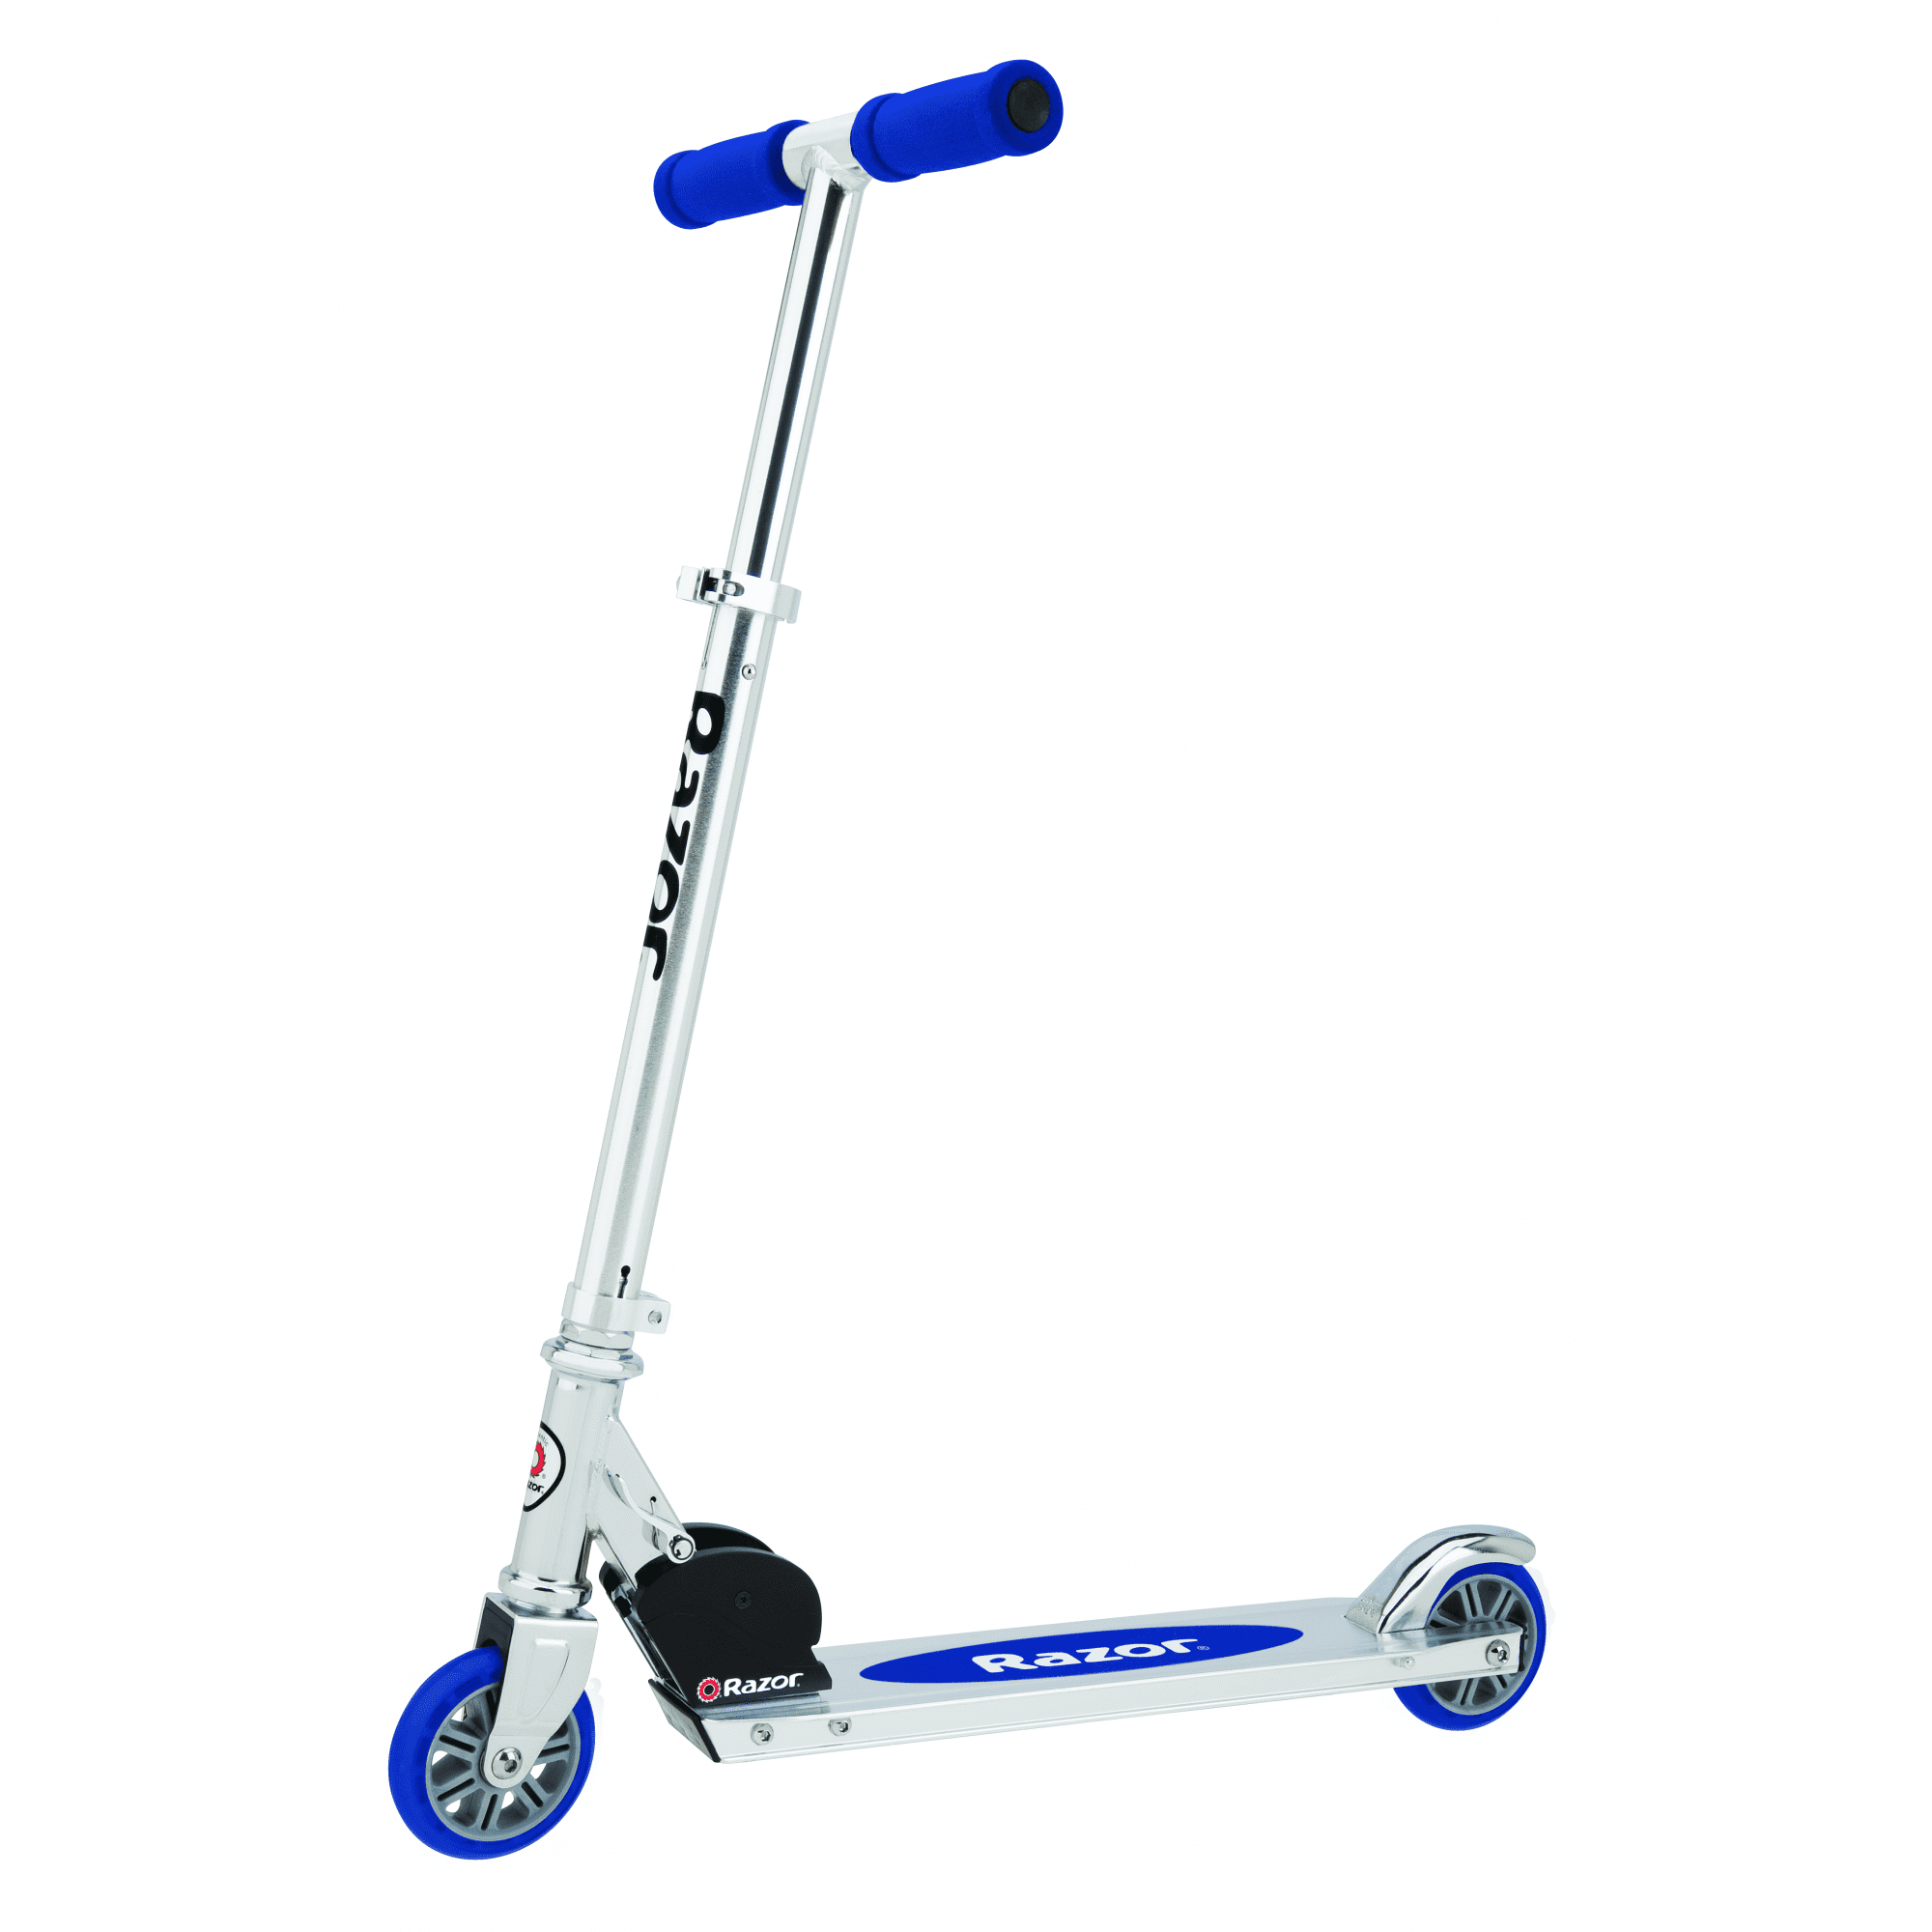 Walmart Toys Scooters For Boys : Scooters walmart